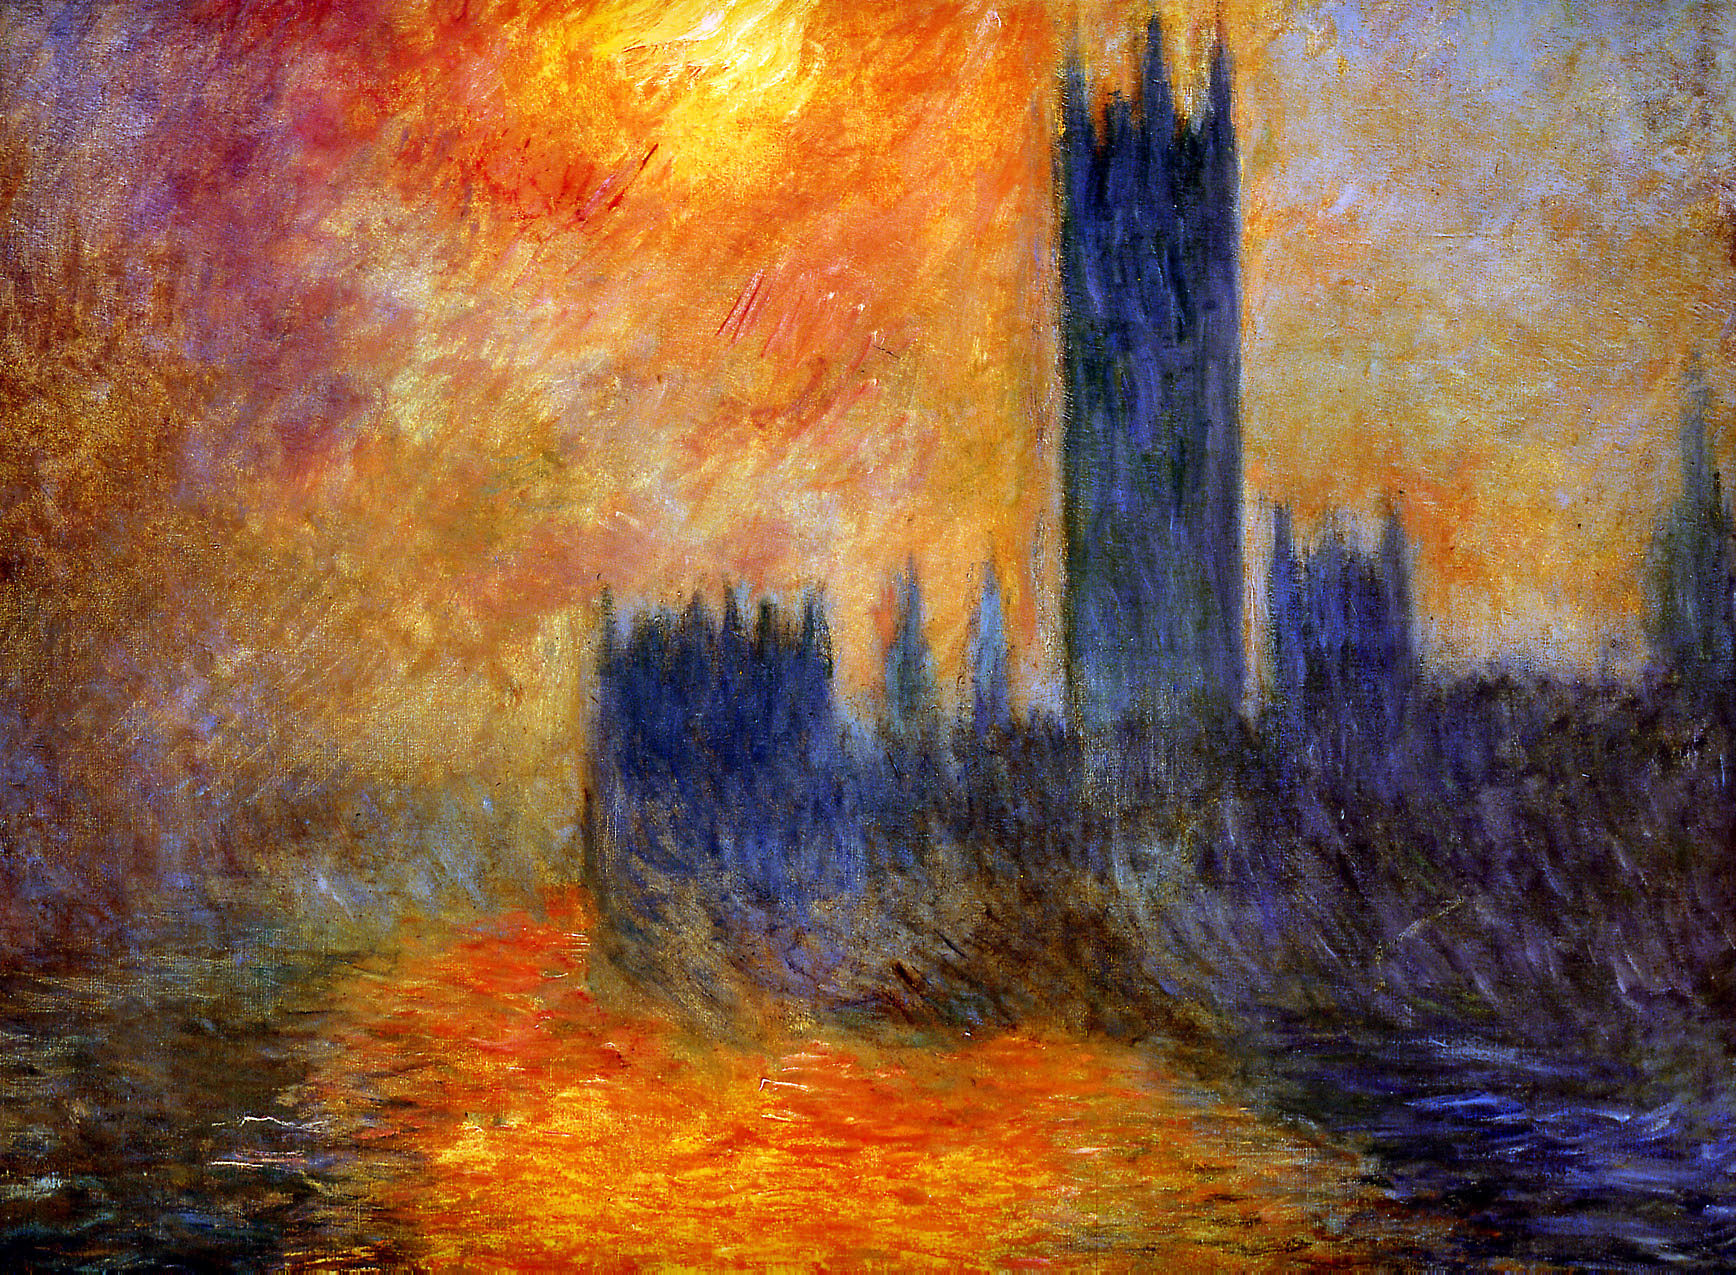 Claude Monet. House of parliament in the sun